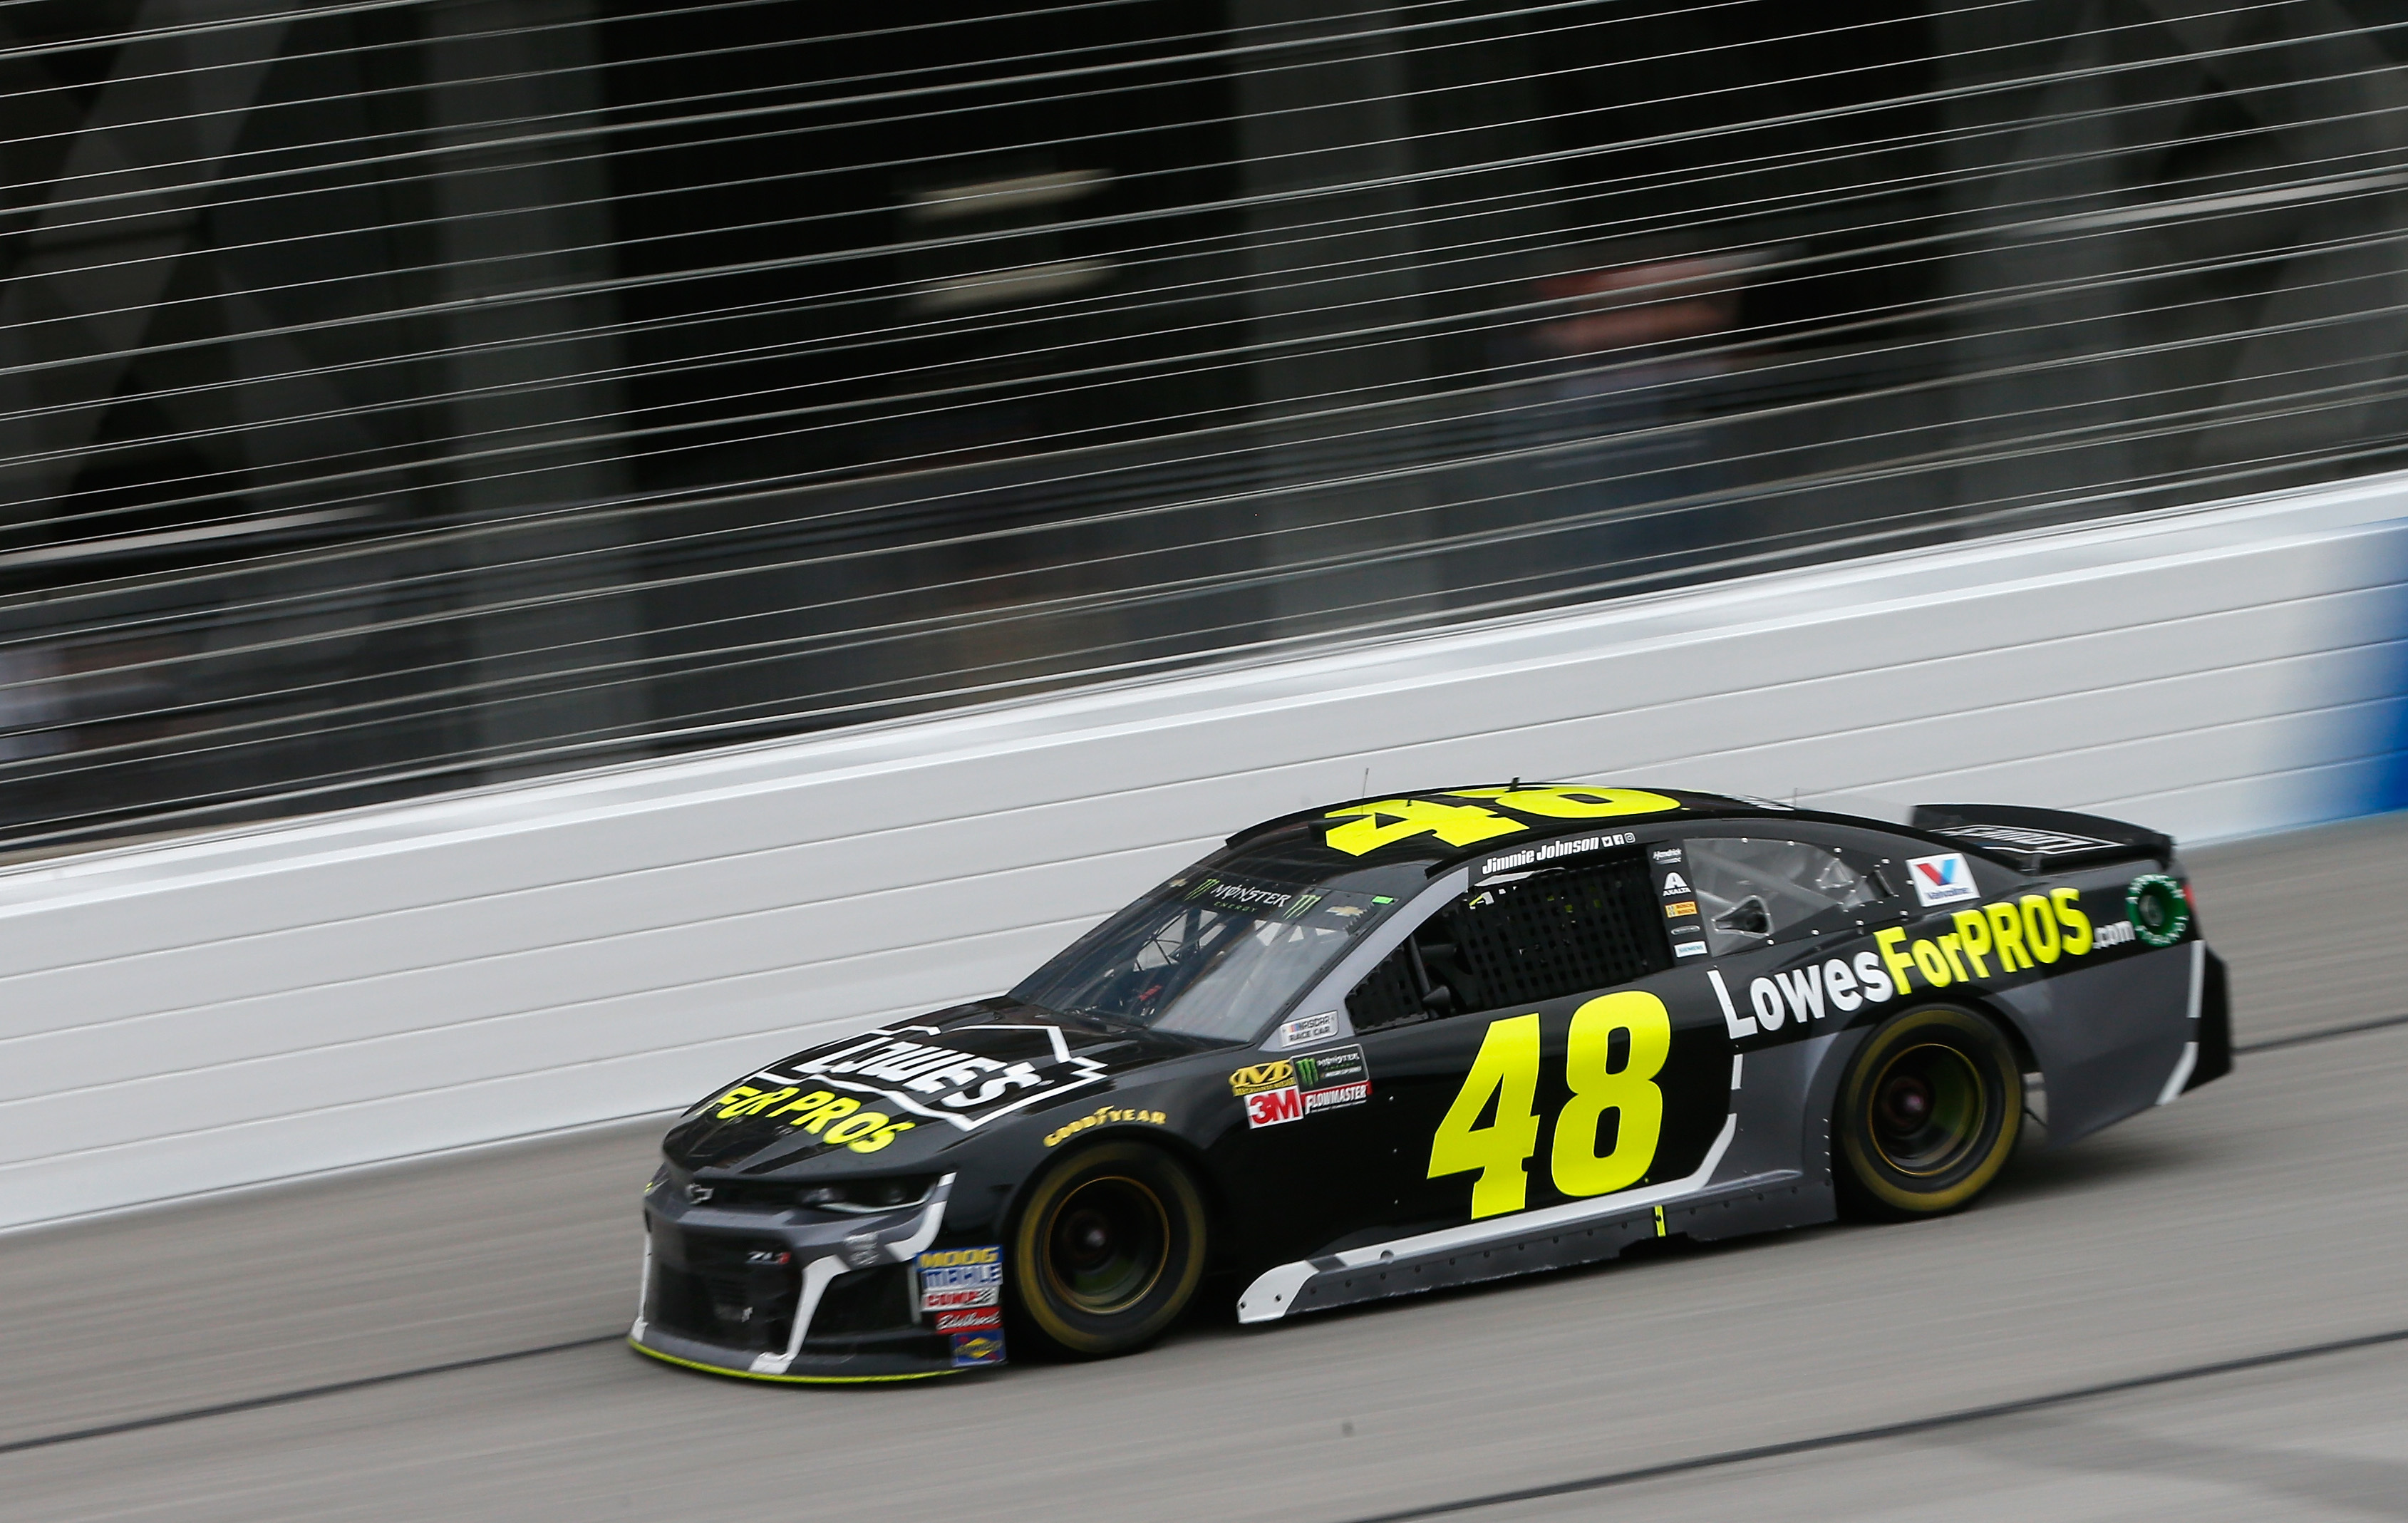 no 48 team to have new primary sponsor in 2019 hendrick motorsports